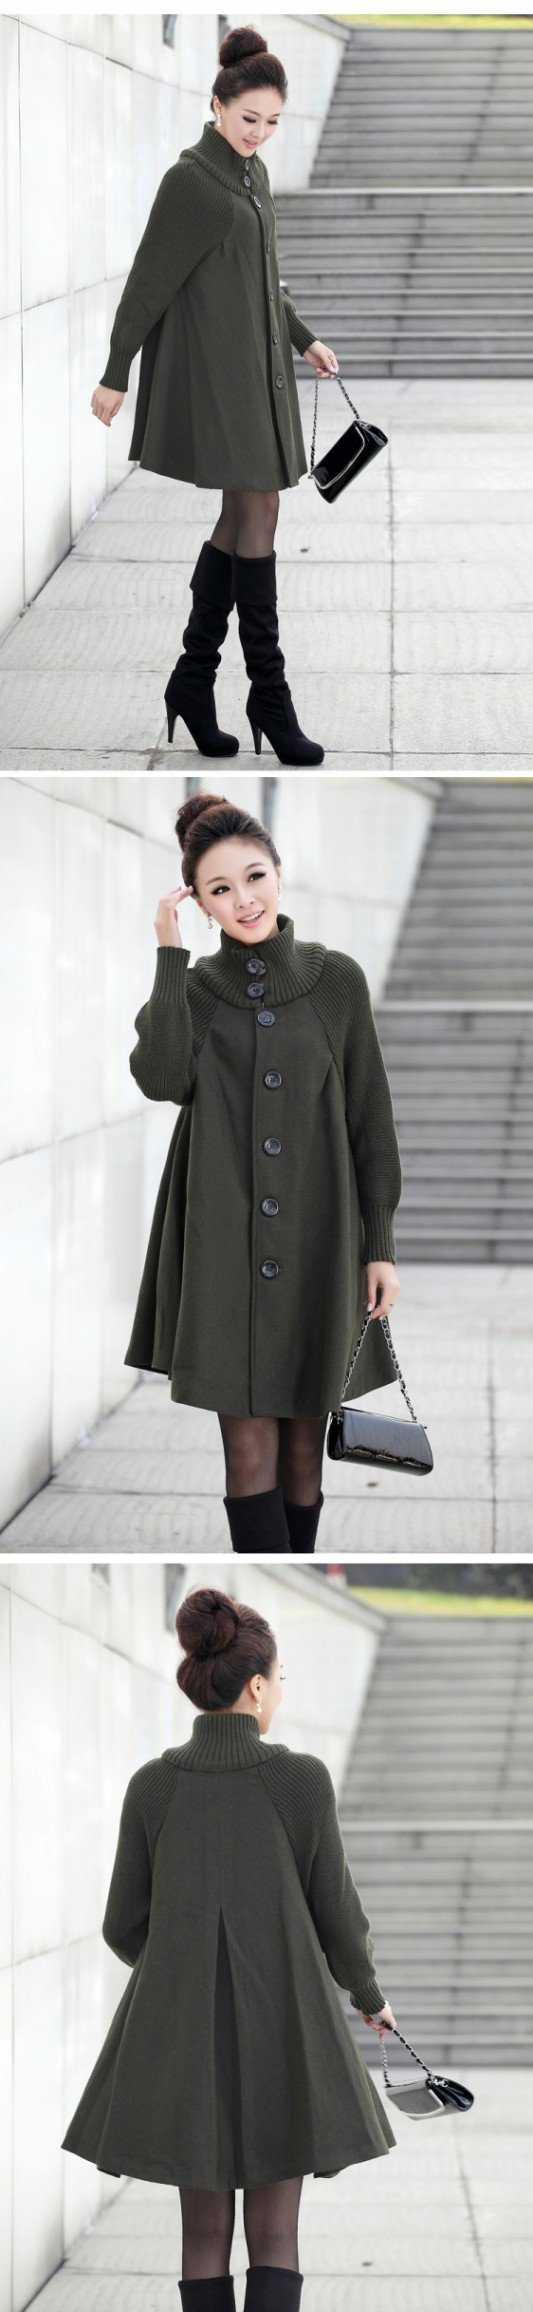 2012 New Korea Style Winter Coat Loose and Comfortable Mandarin Collar Wooden Yarn Cloak Tweed Coat